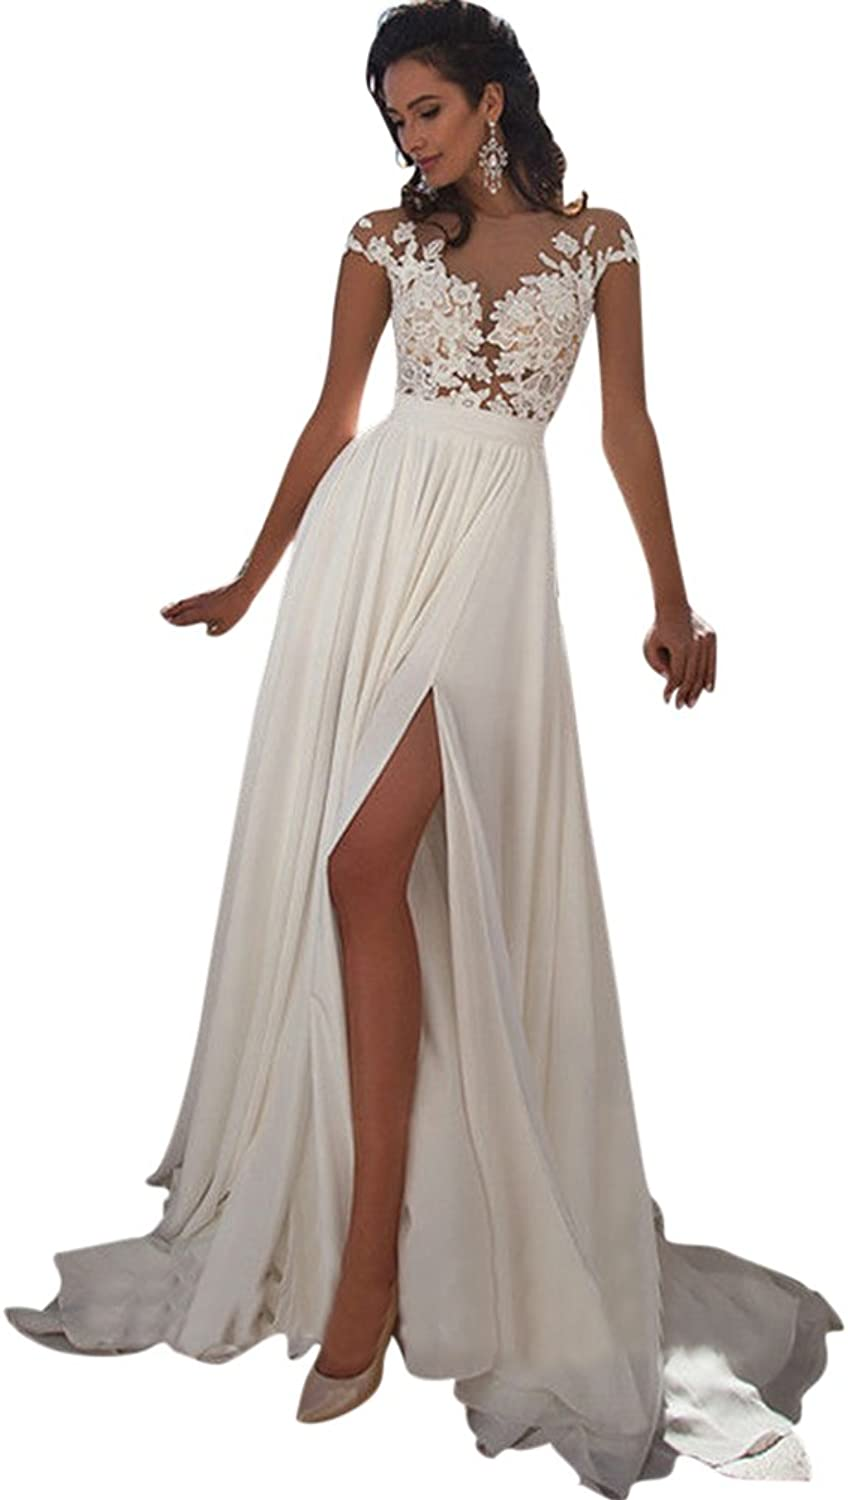 JoyVany SeeThrough Back Applique Cap Sleeves Wedding Dresses with High Slit